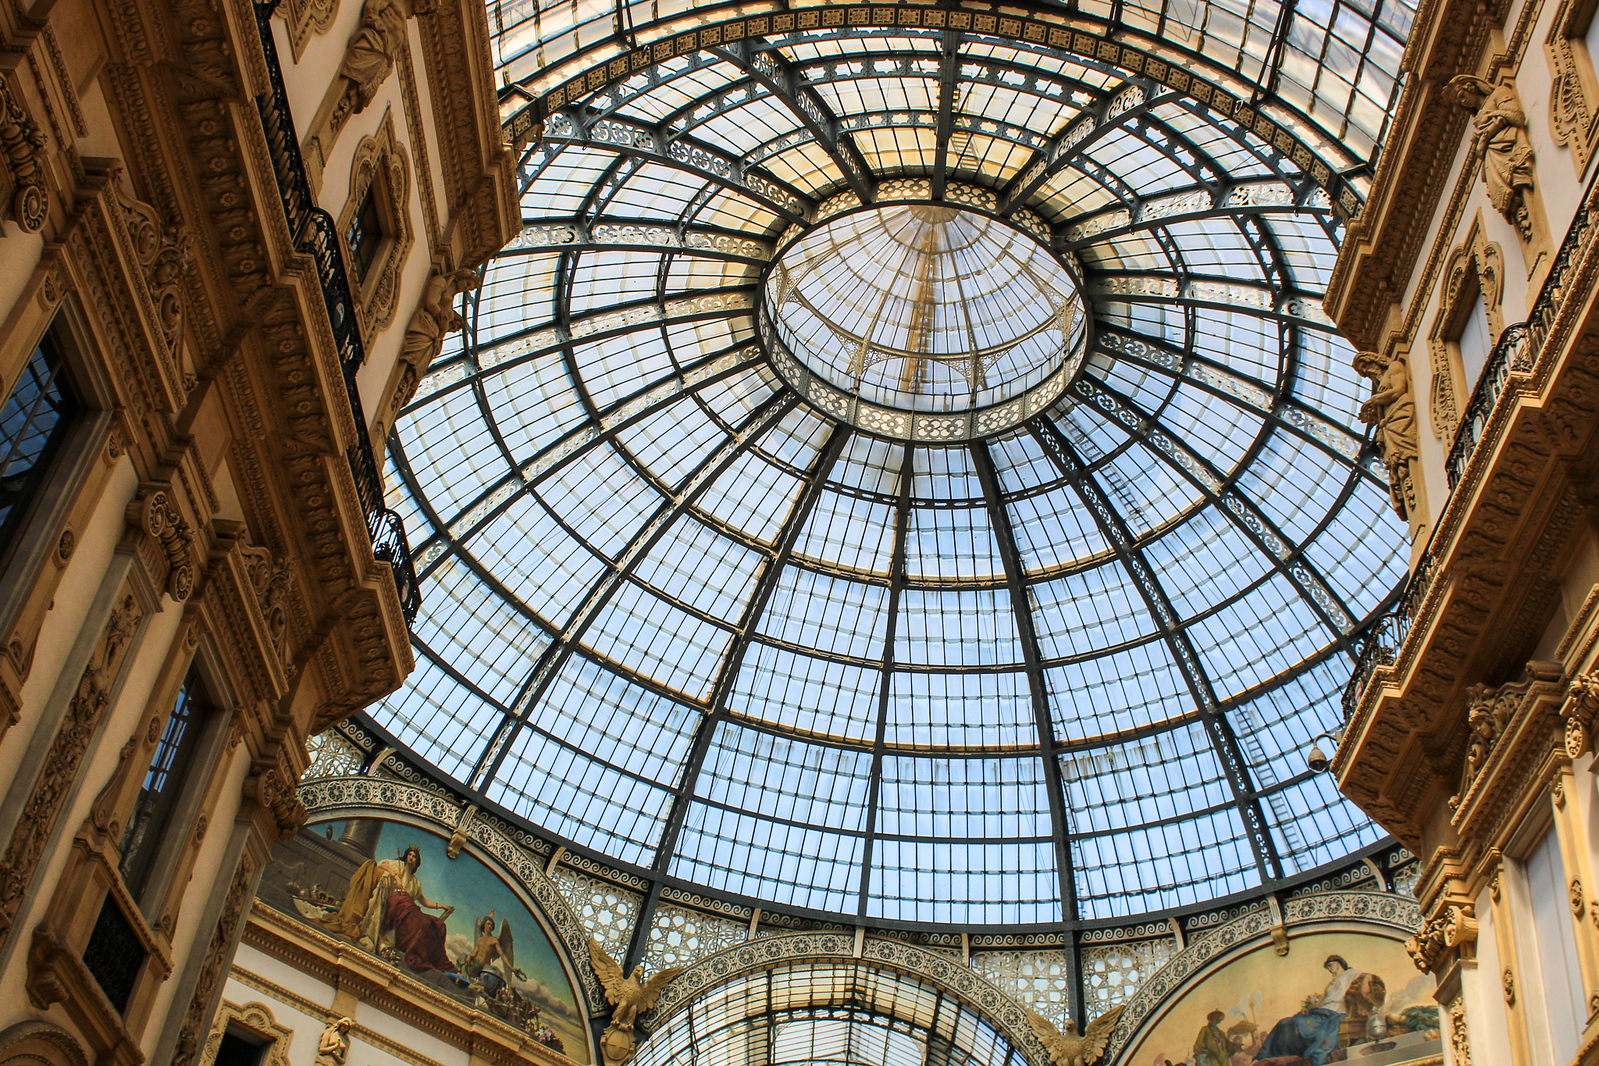 with 1 day in milan check out the ceiling at the galleria